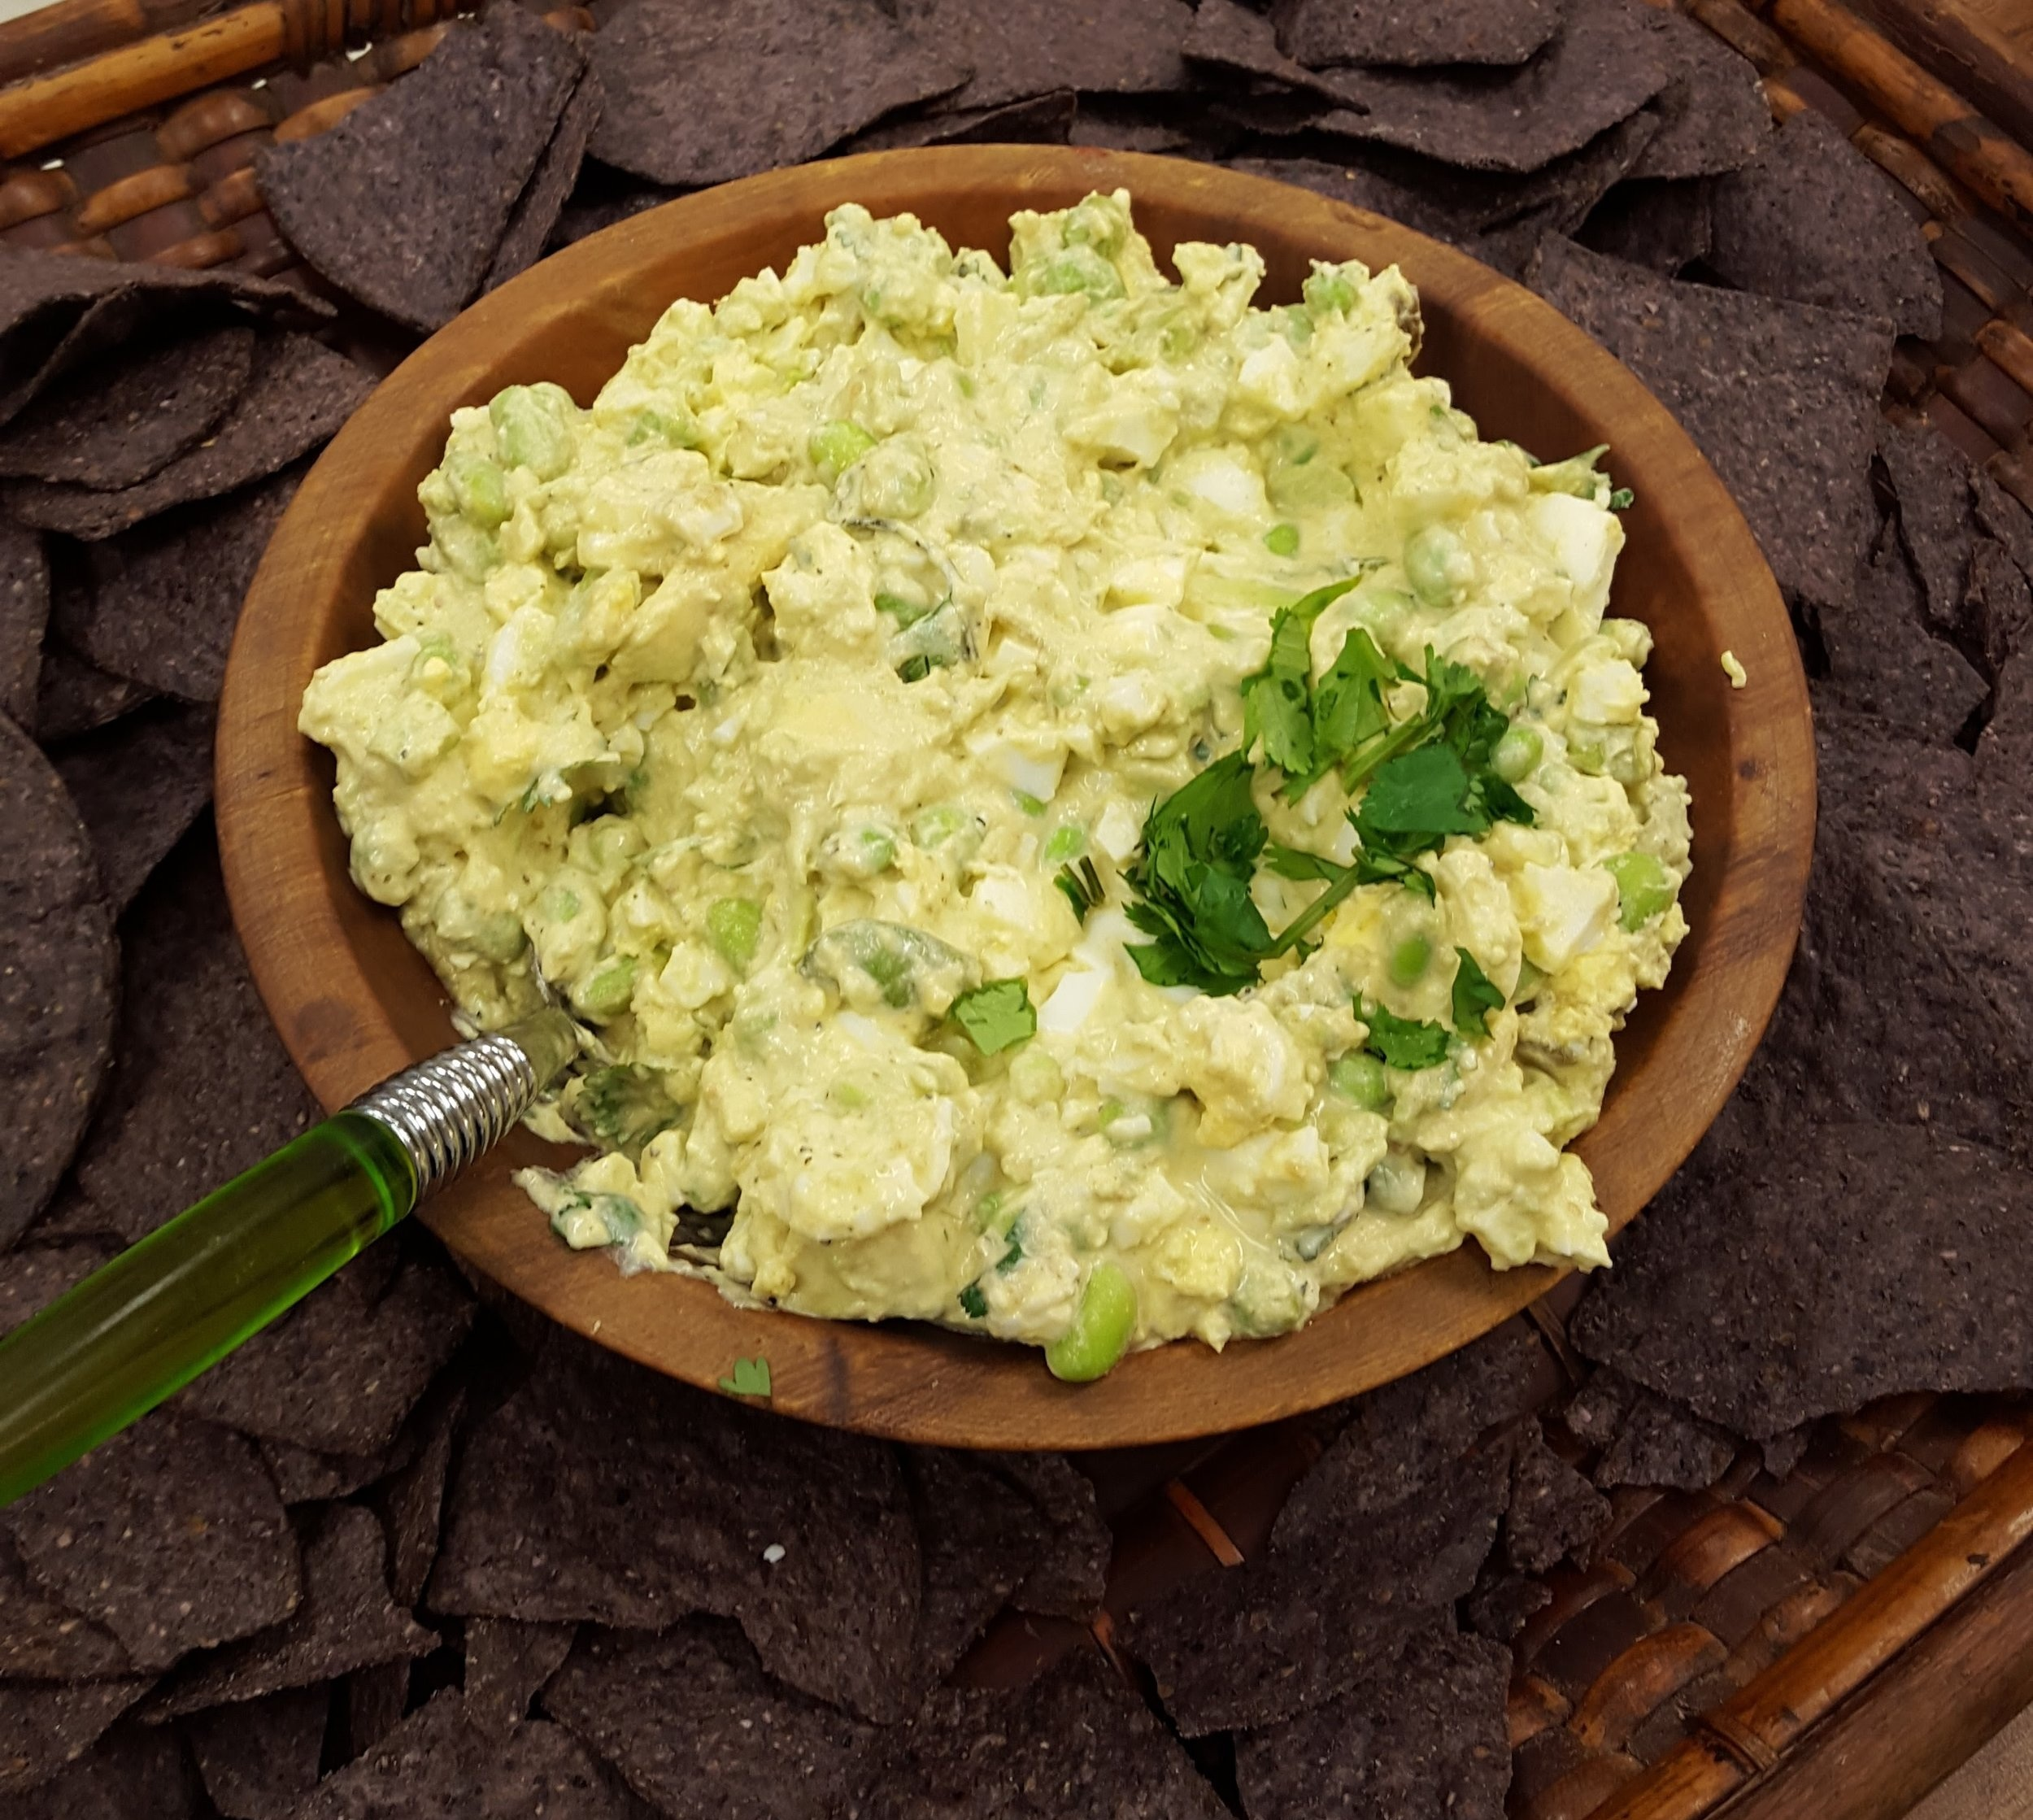 Egg Salad Guacamole with Edamame served with blue corn chips.